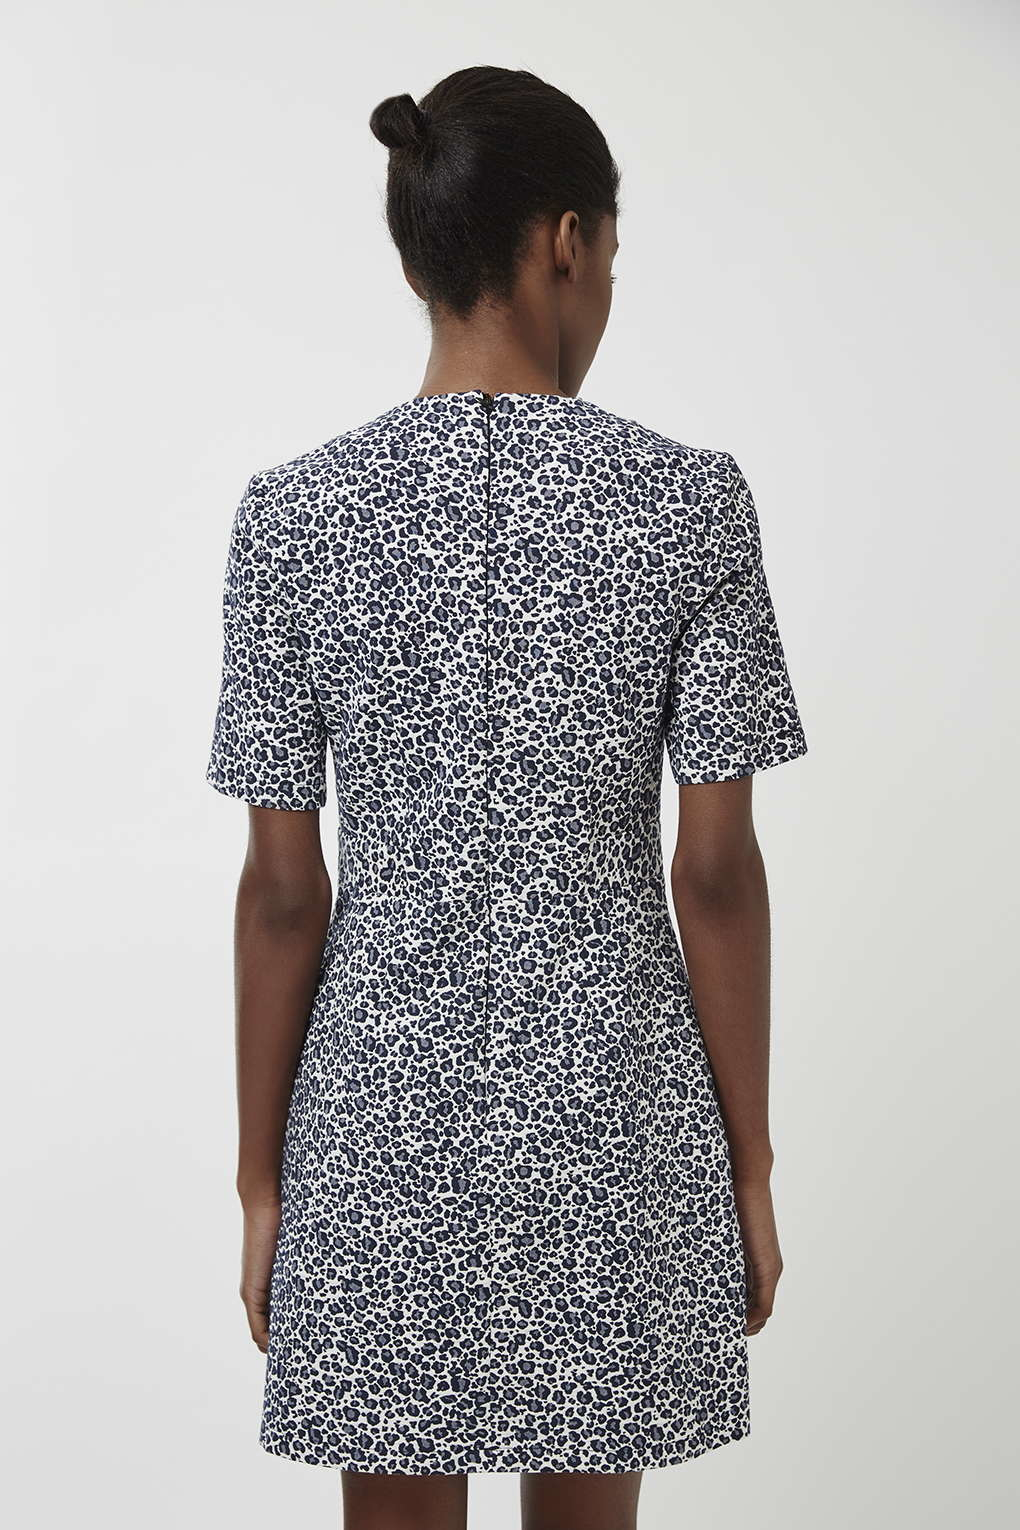 TOPSHOP  60s Animal Shift Dress in Blue - Lyst 841f52392